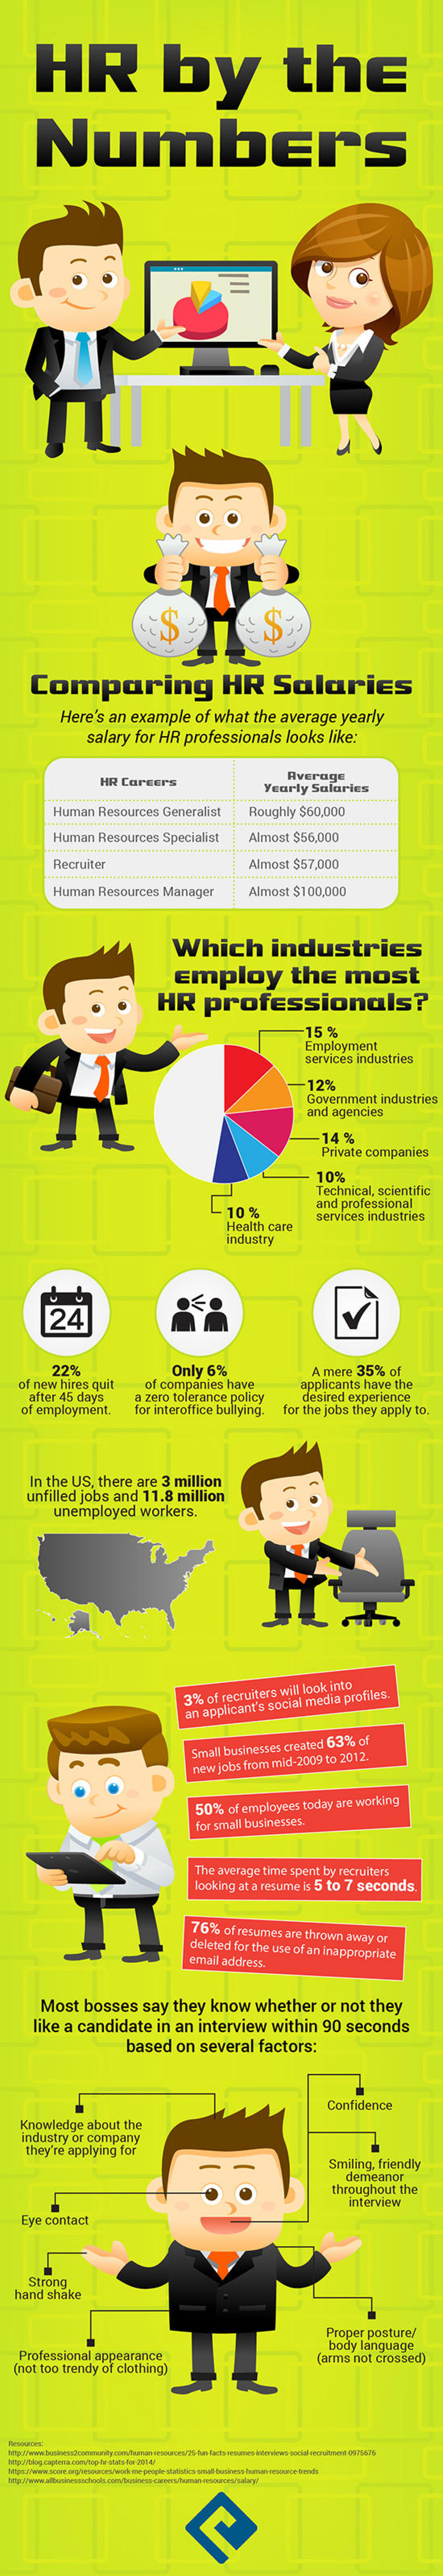 HR By The Numbers Infographic